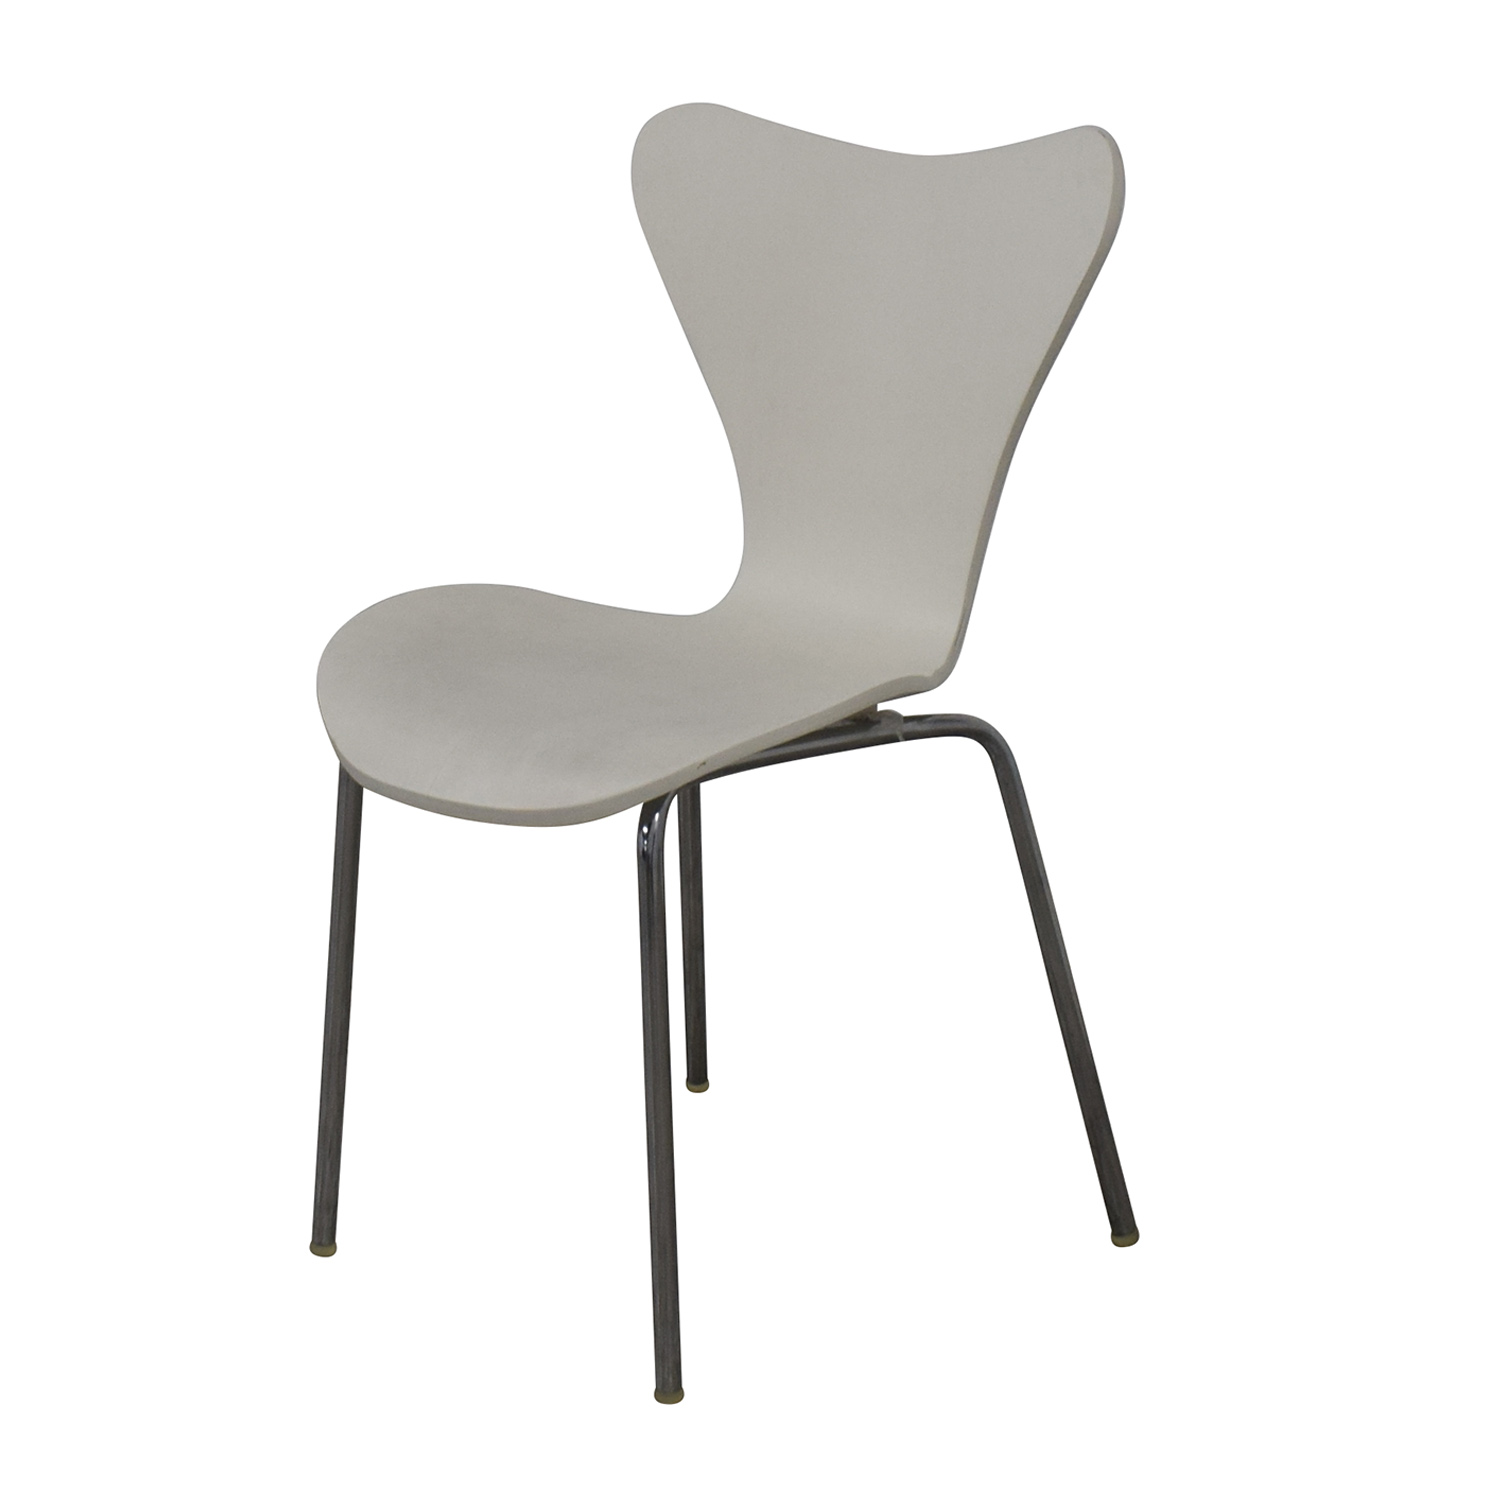 Restoration Hardware White and Metal Dining Chair / Accent Chairs